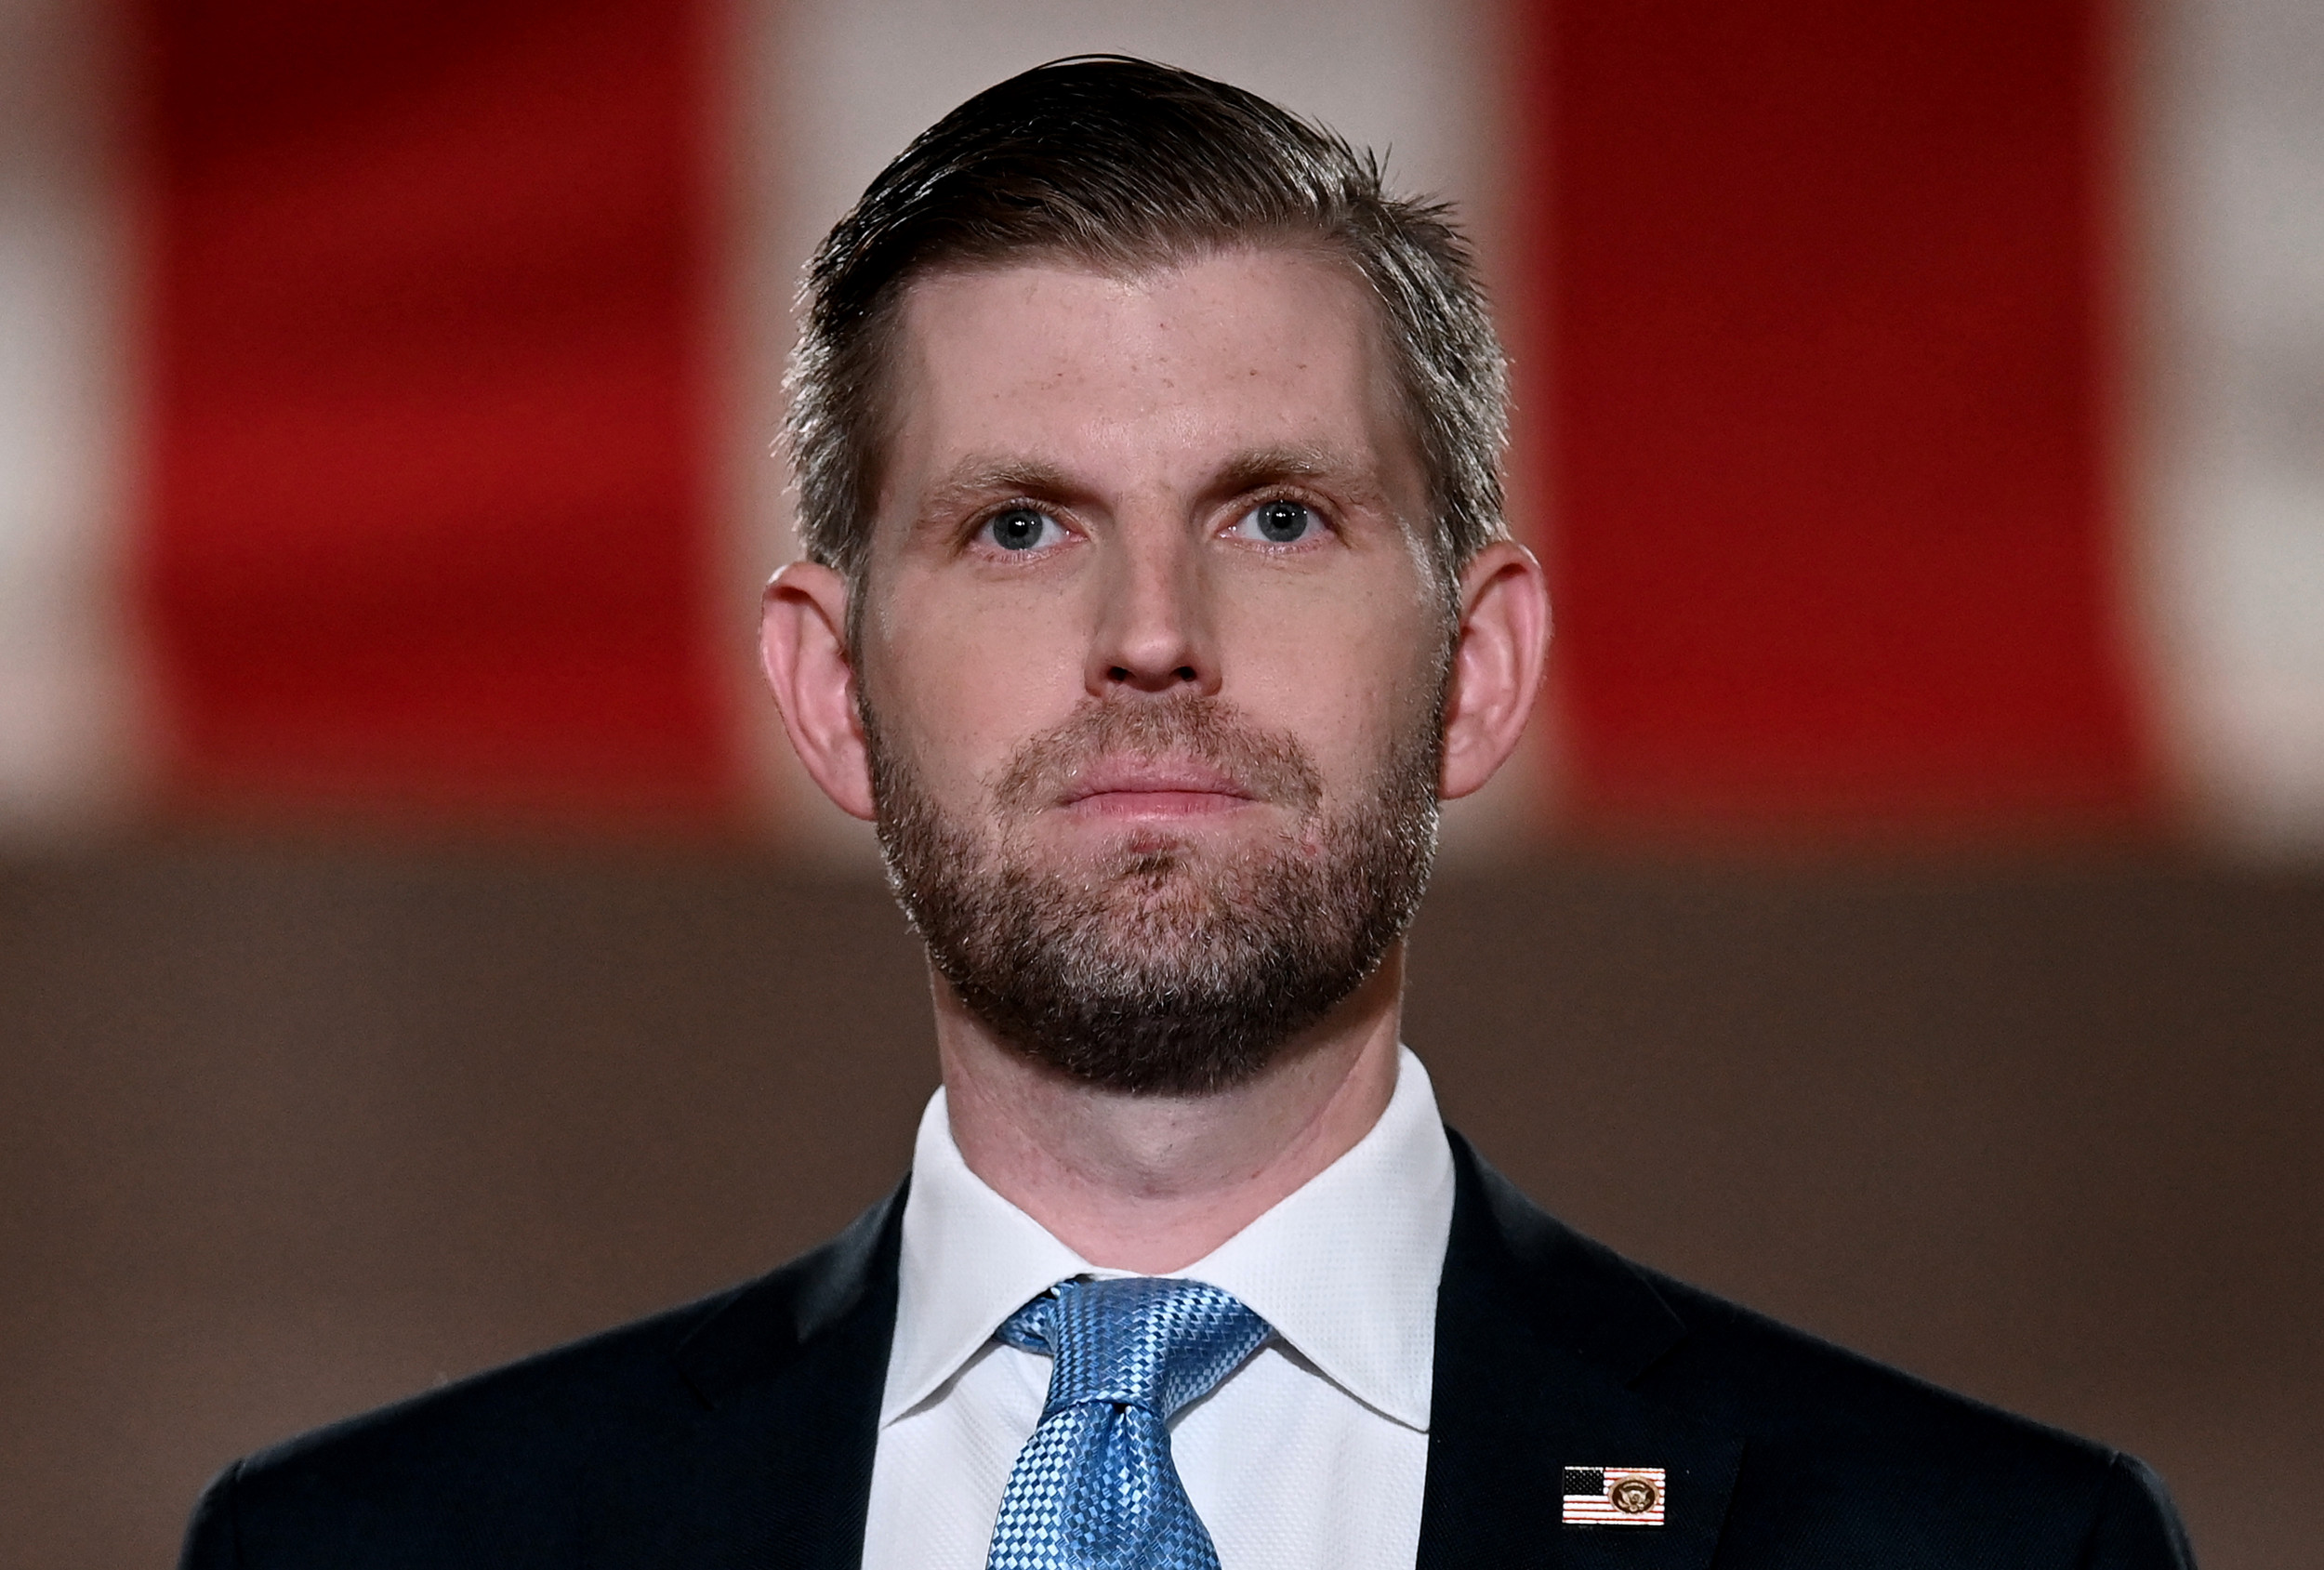 Eric Trump offers Bill de Blasio an olive branch, but NYC mayor says no more business